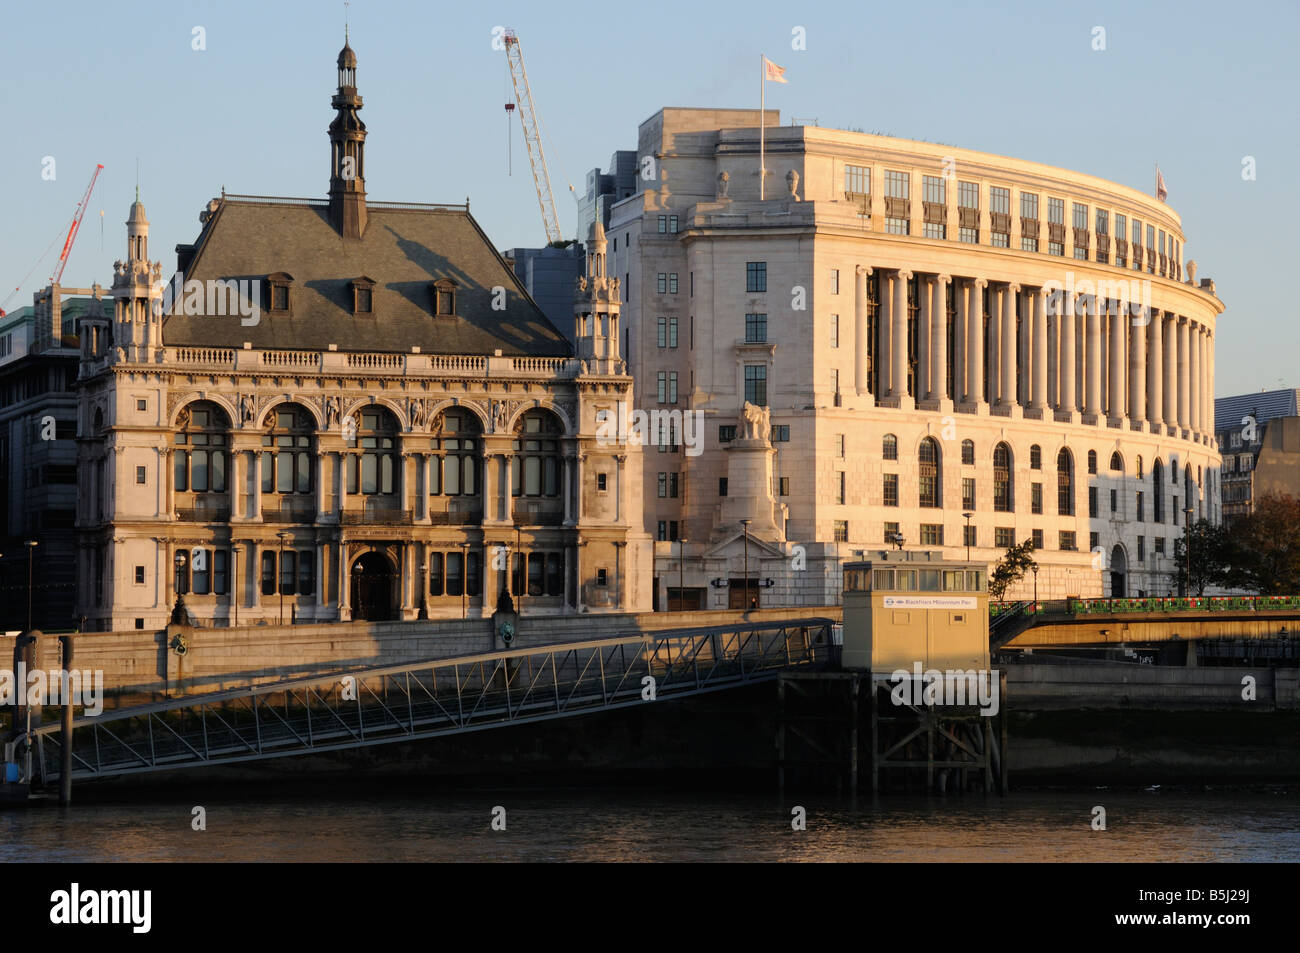 Victoria Embankment from The South Bank, London, UK - Stock Image